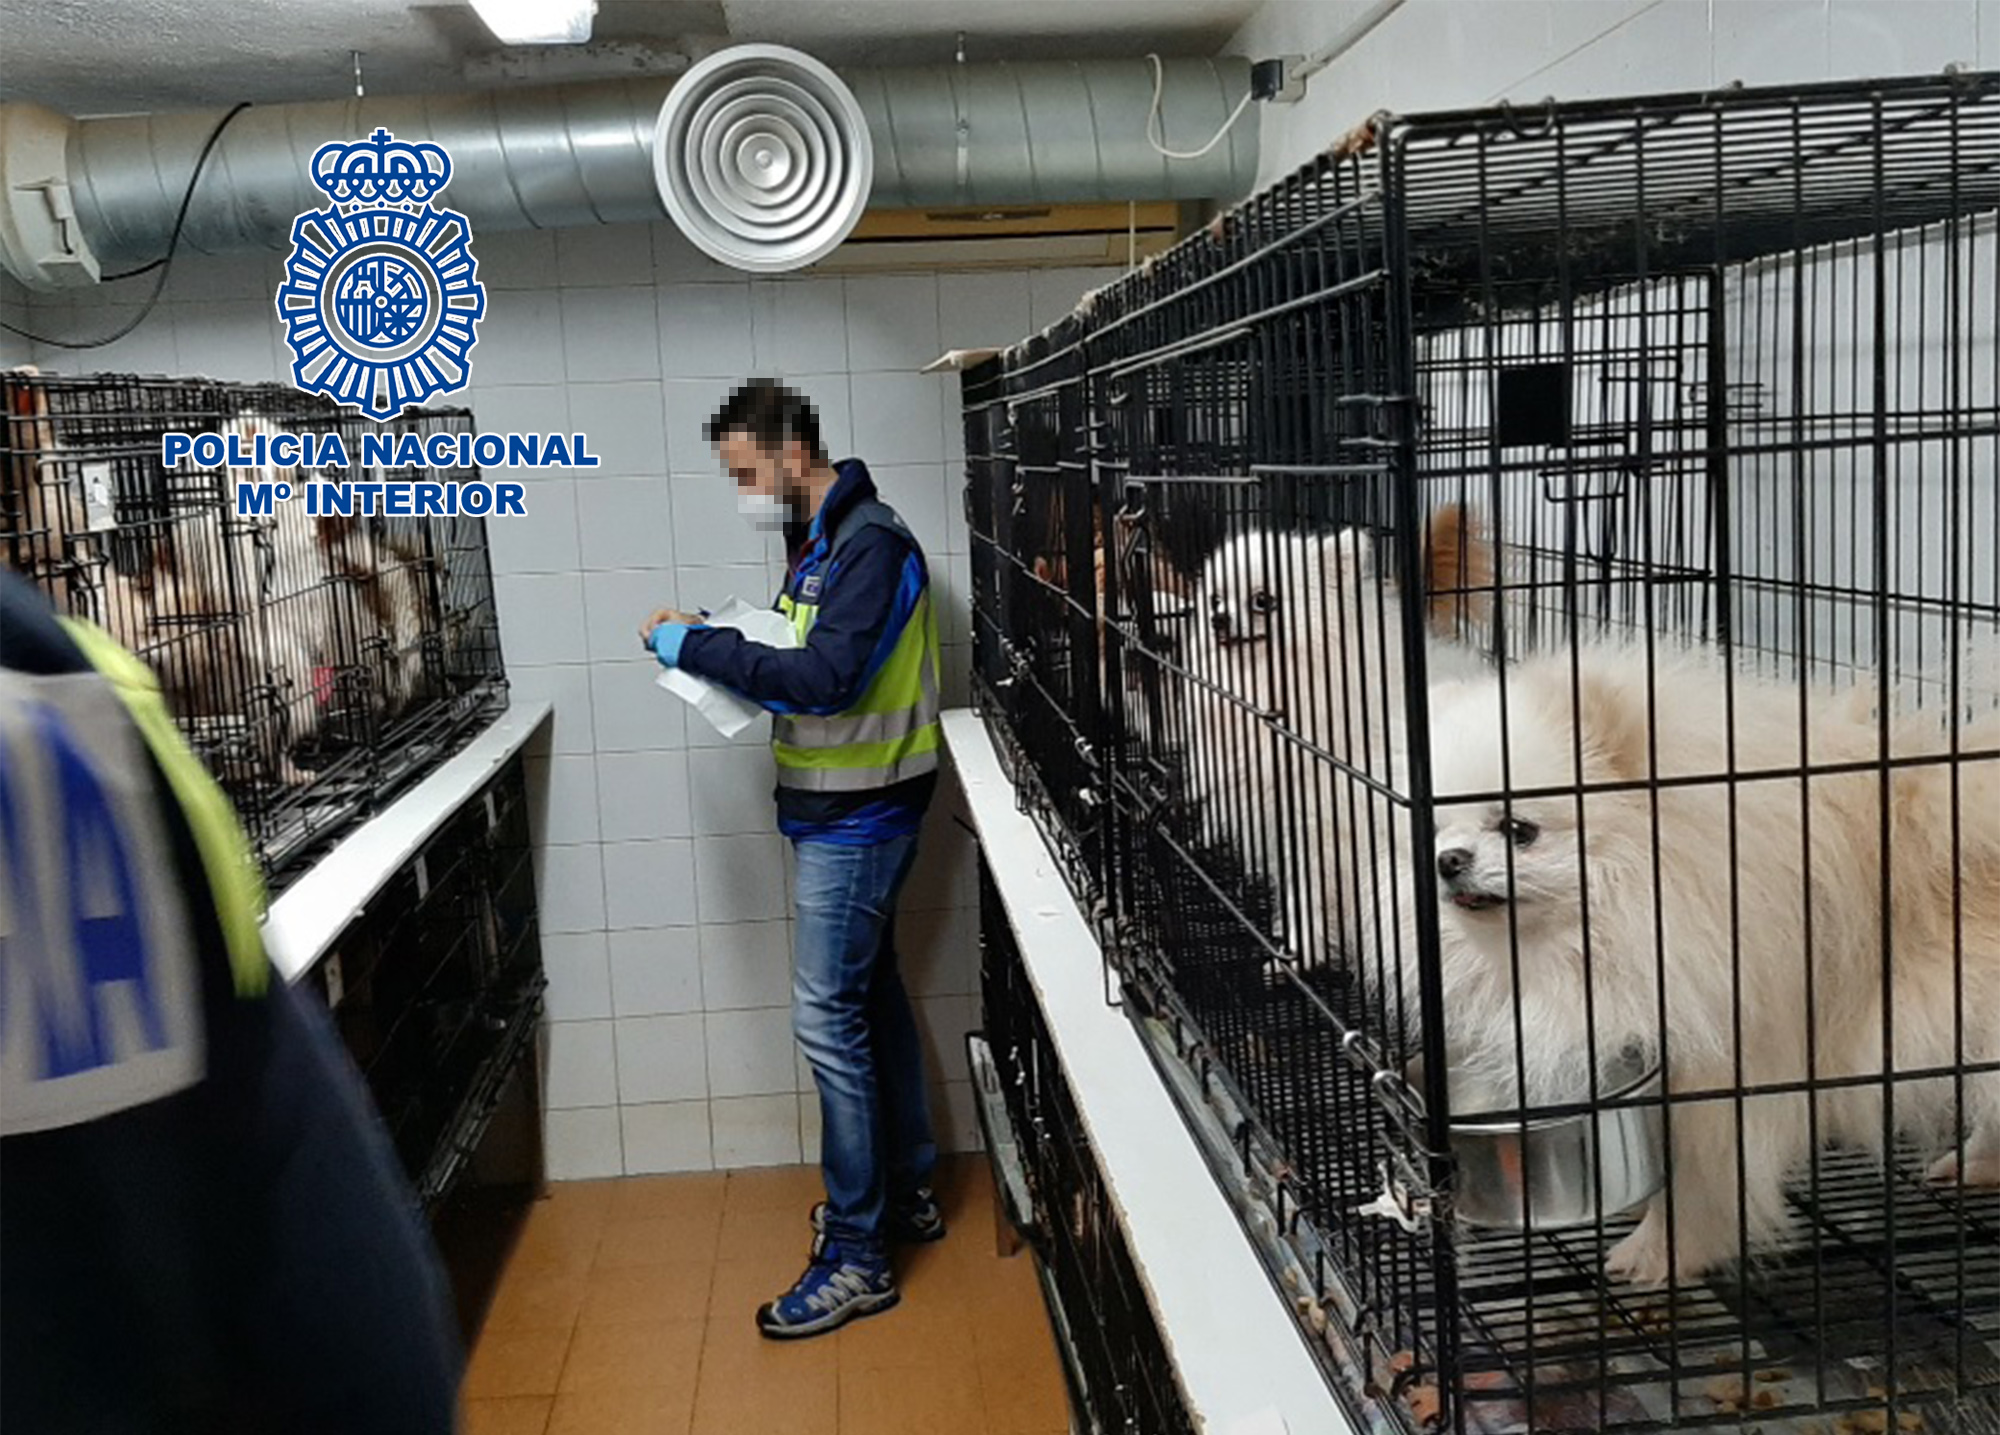 Policia Nacional rescue 270 Chihuahuas in illegal breeding raids